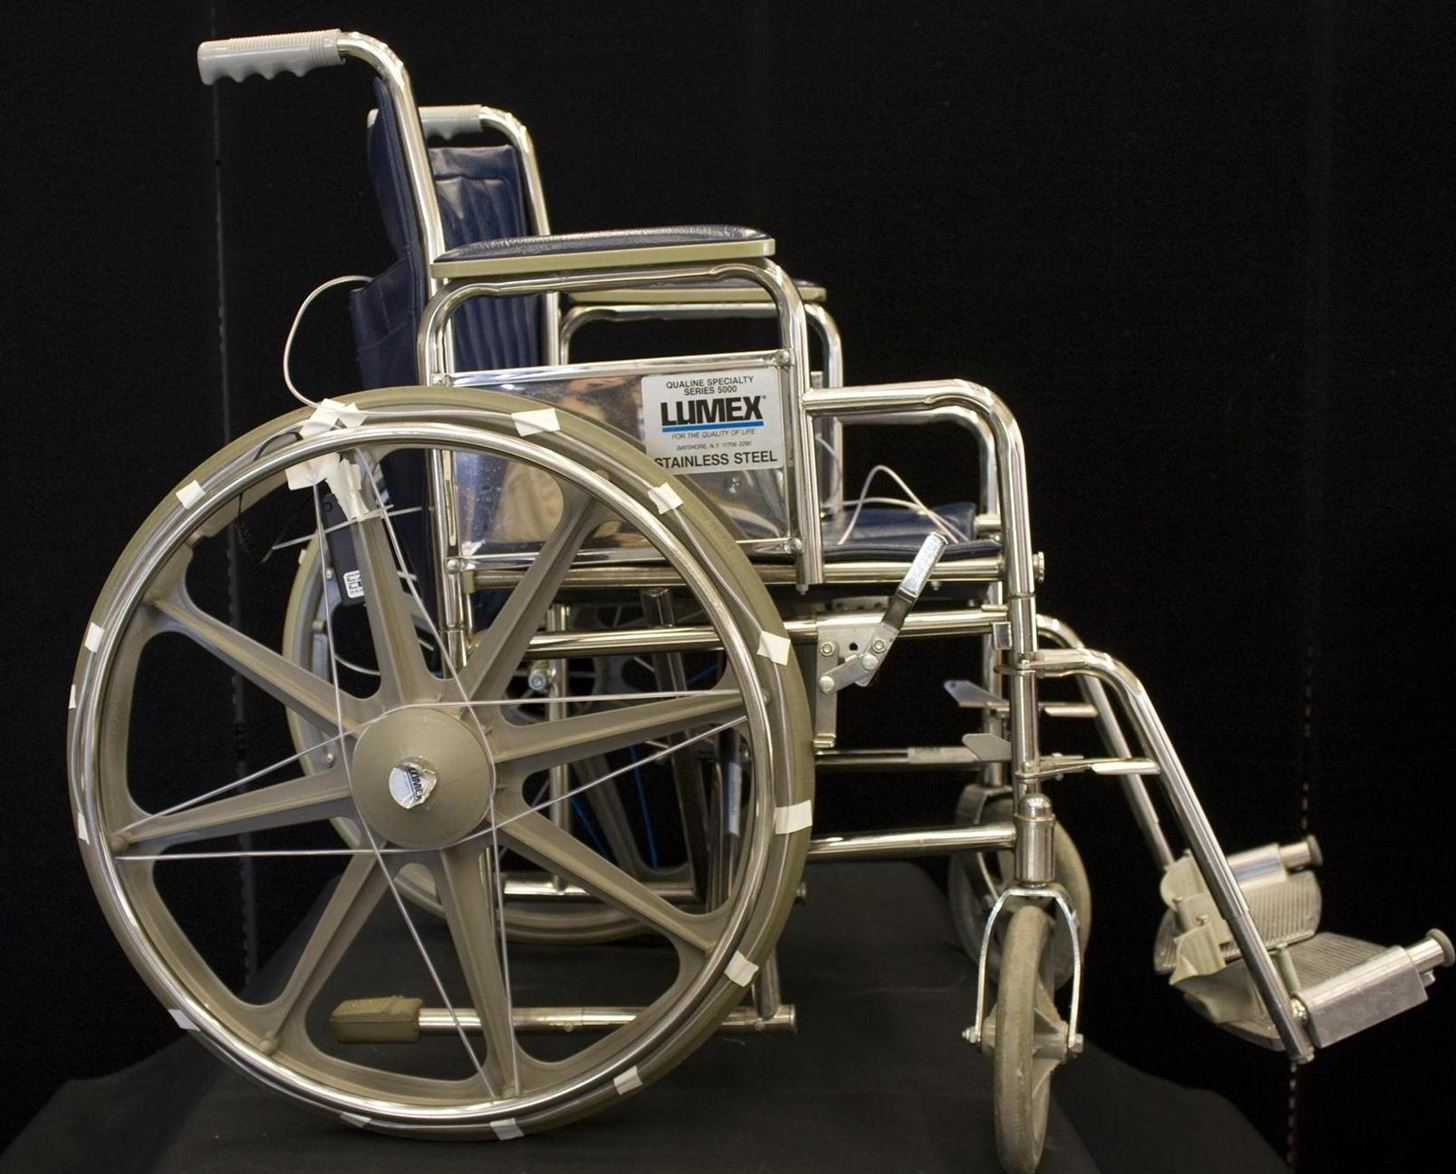 illuminate wheelchair for safety using el wire led strip.w1456?resize=665%2C536&ssl=1 ez lock wheelchair wiring diagram wiring diagram ez lock wheelchair wiring diagram at gsmportal.co